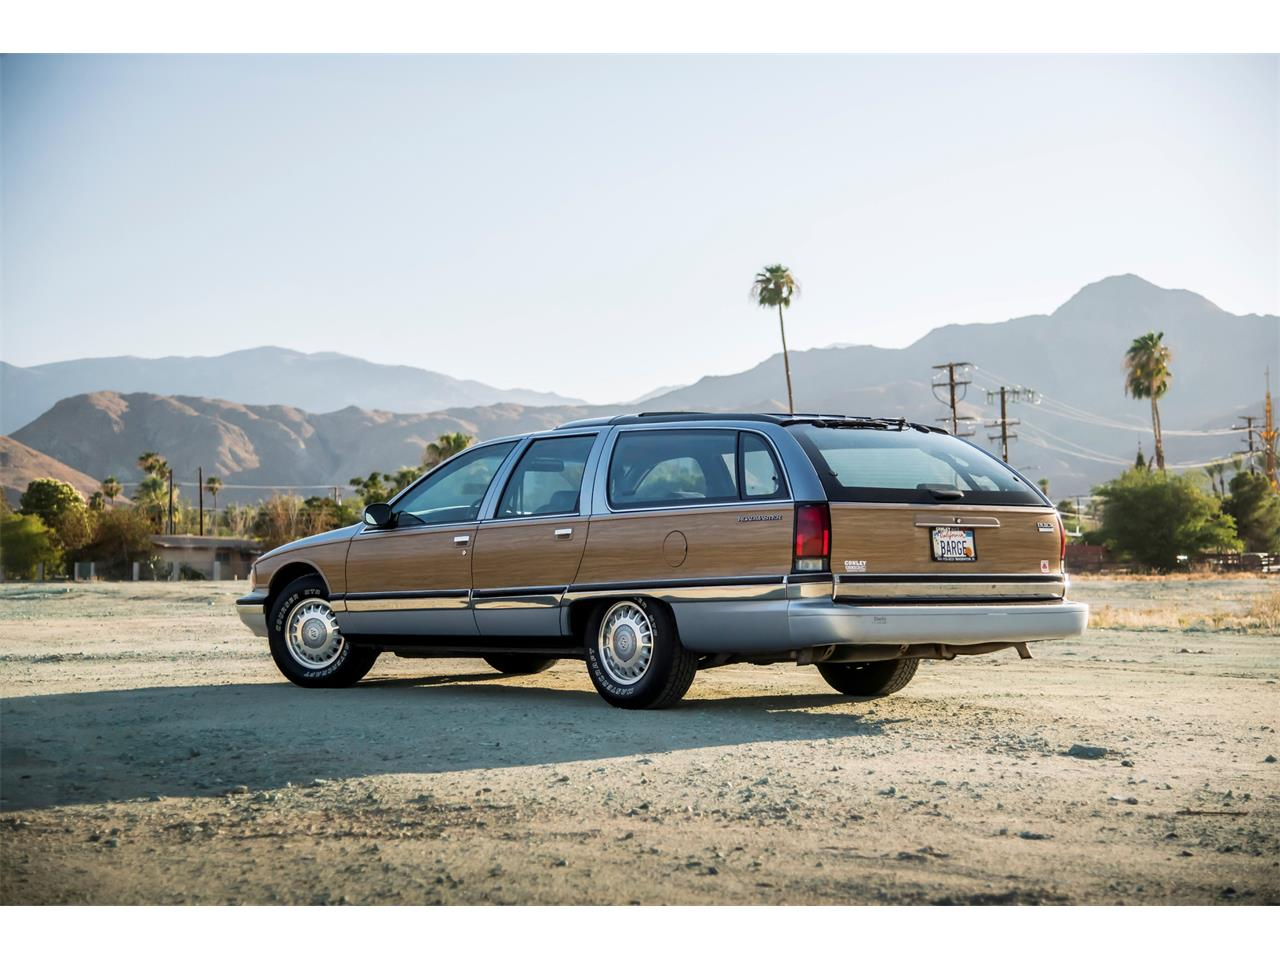 1995 Buick Roadmaster for sale in Cathedral City, CA – photo 8